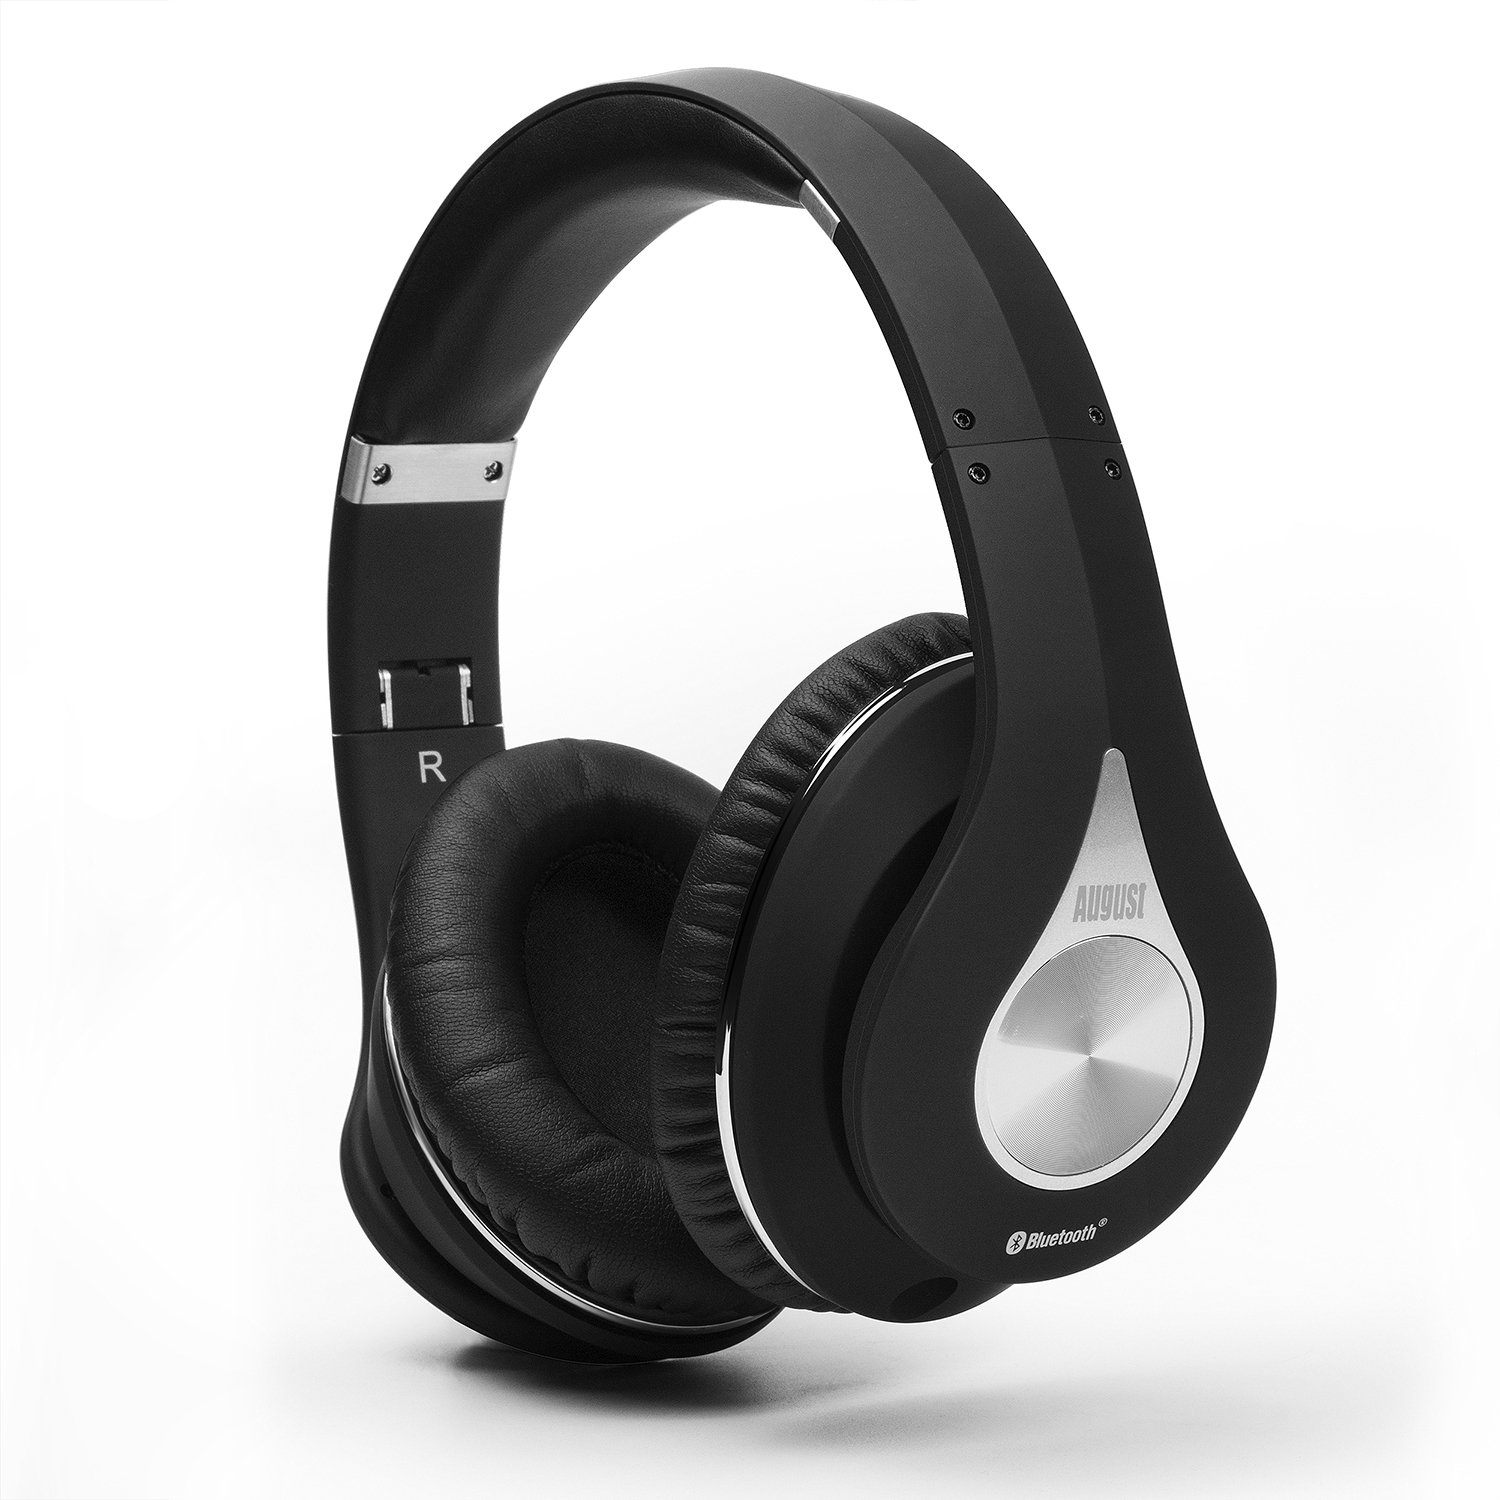 August EP640 Bluetooth Wireless Stereo NFC Headphones with 3.5mm Wired Audio In, Rechargeable Battery, NFC Tap To Connect and Built-in Microphone - Black